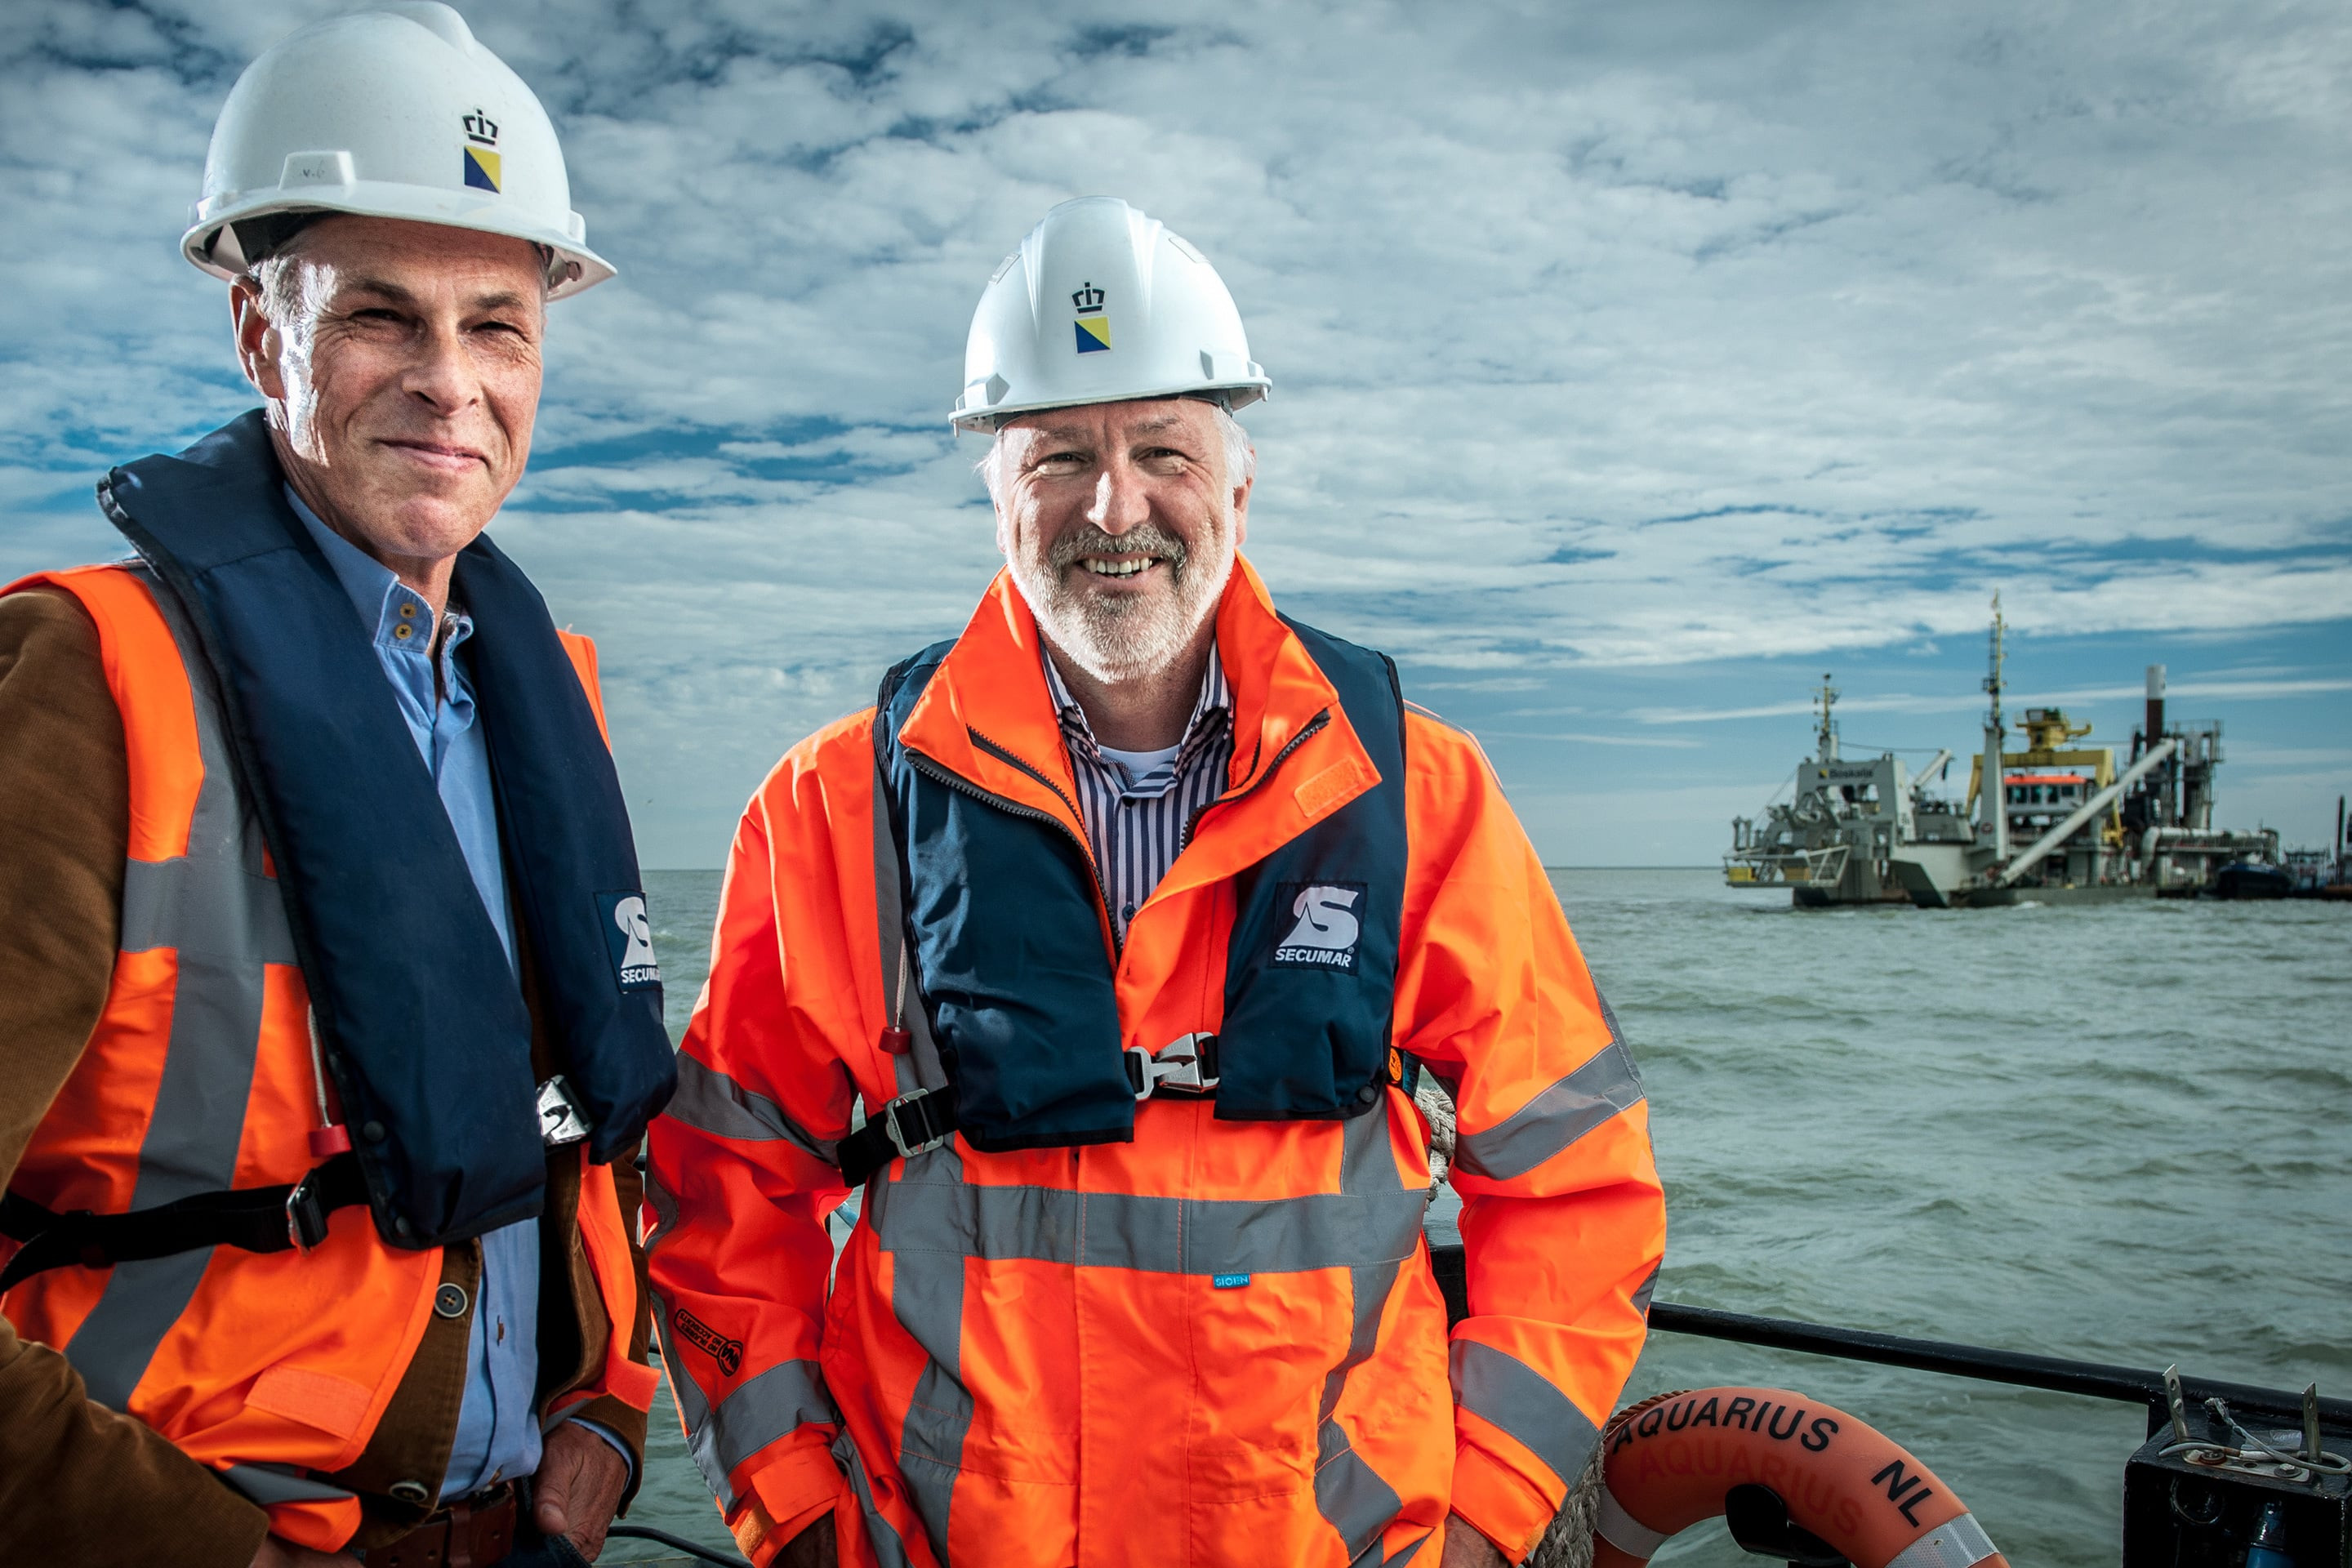 On the left Roel Posthoorn, Project Director of Natuurmonumenten, and on the right Hendrik Postma, Director at Boskalis